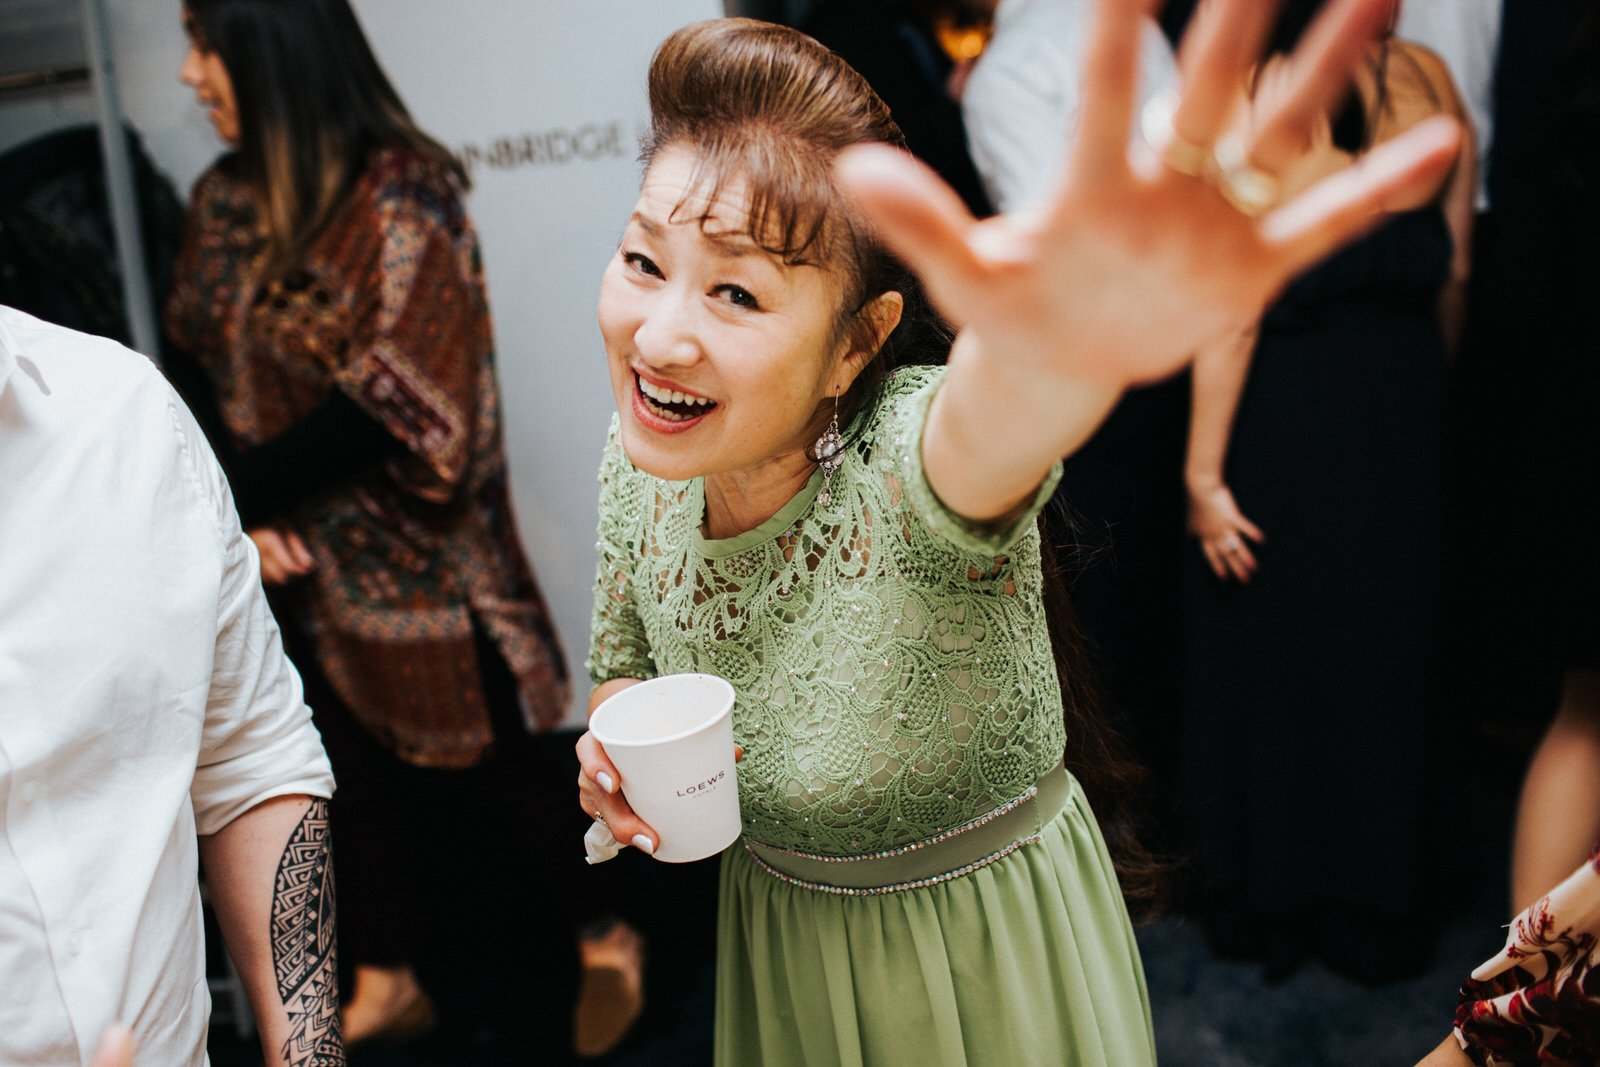 Guests laugh and party during the reception